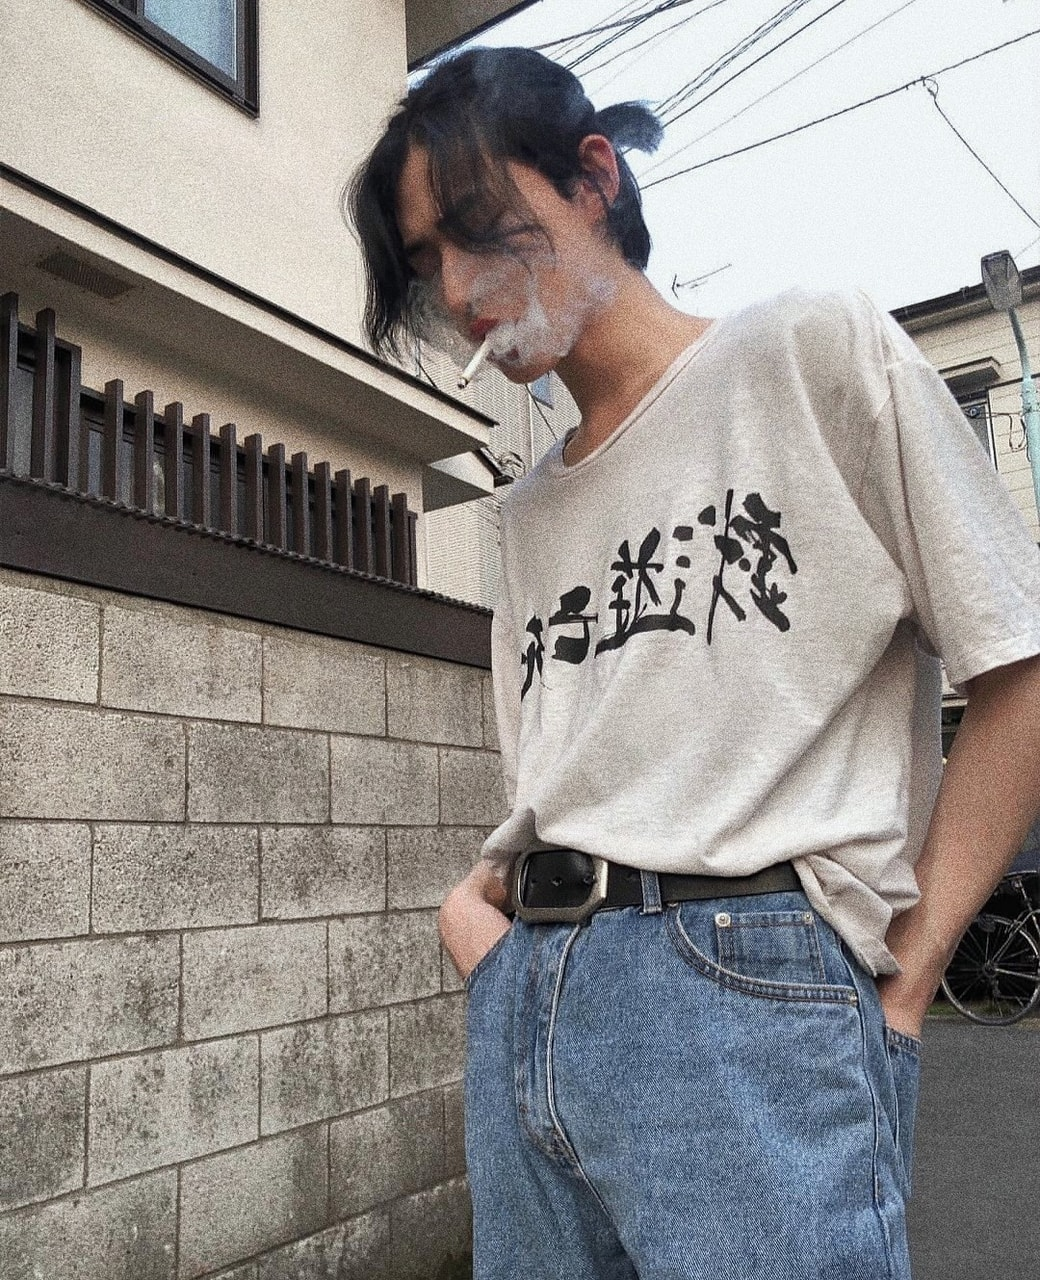 aesthetic, boys, dudes and fashion